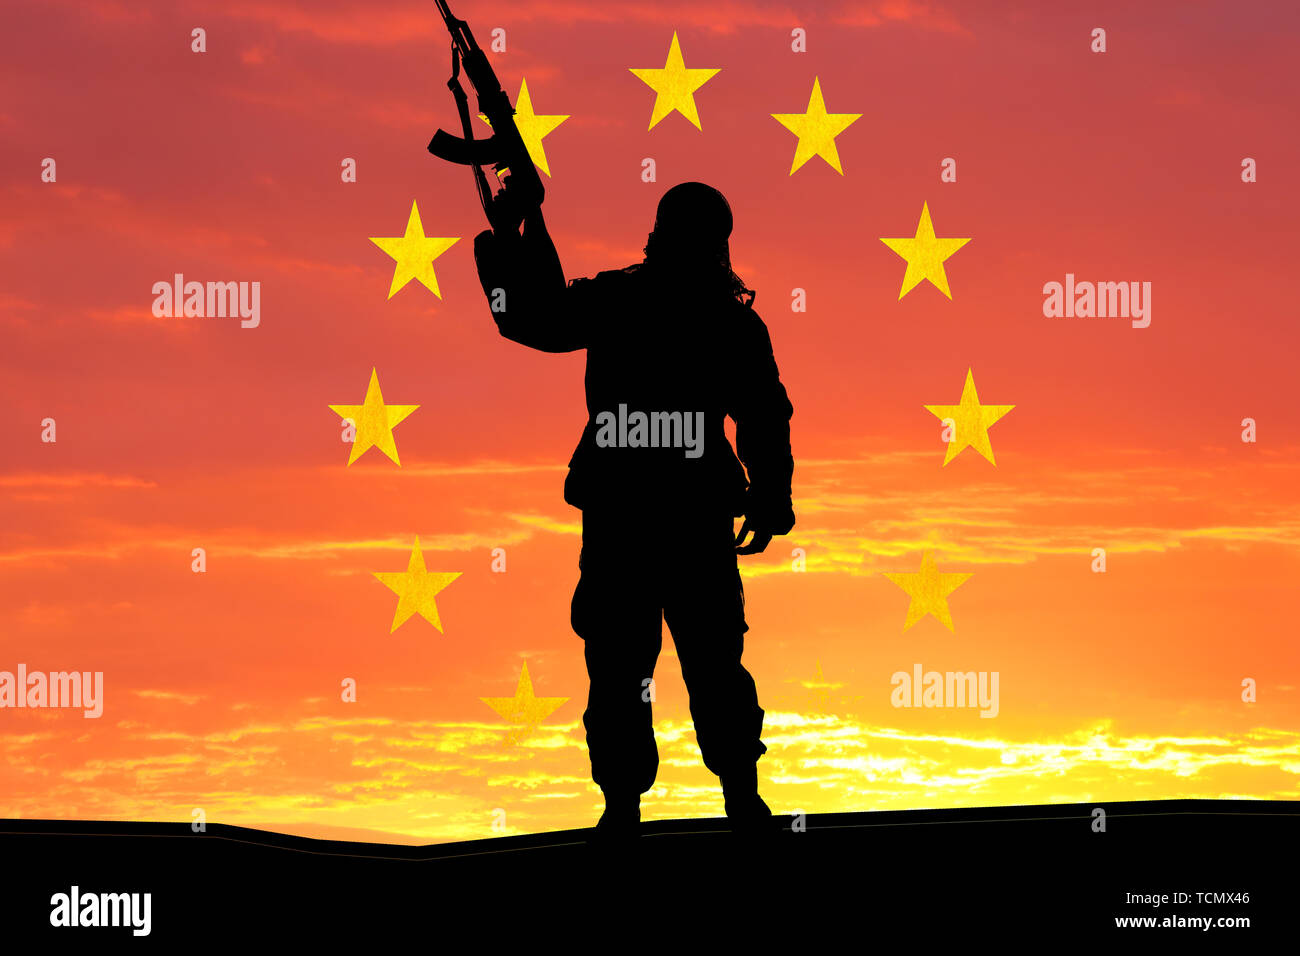 Silhouette of military soldier, shot, holding gun, colorful sky, Concept of a terrorist. Silhouette terrorists with rifle, national flag on background Stock Photo